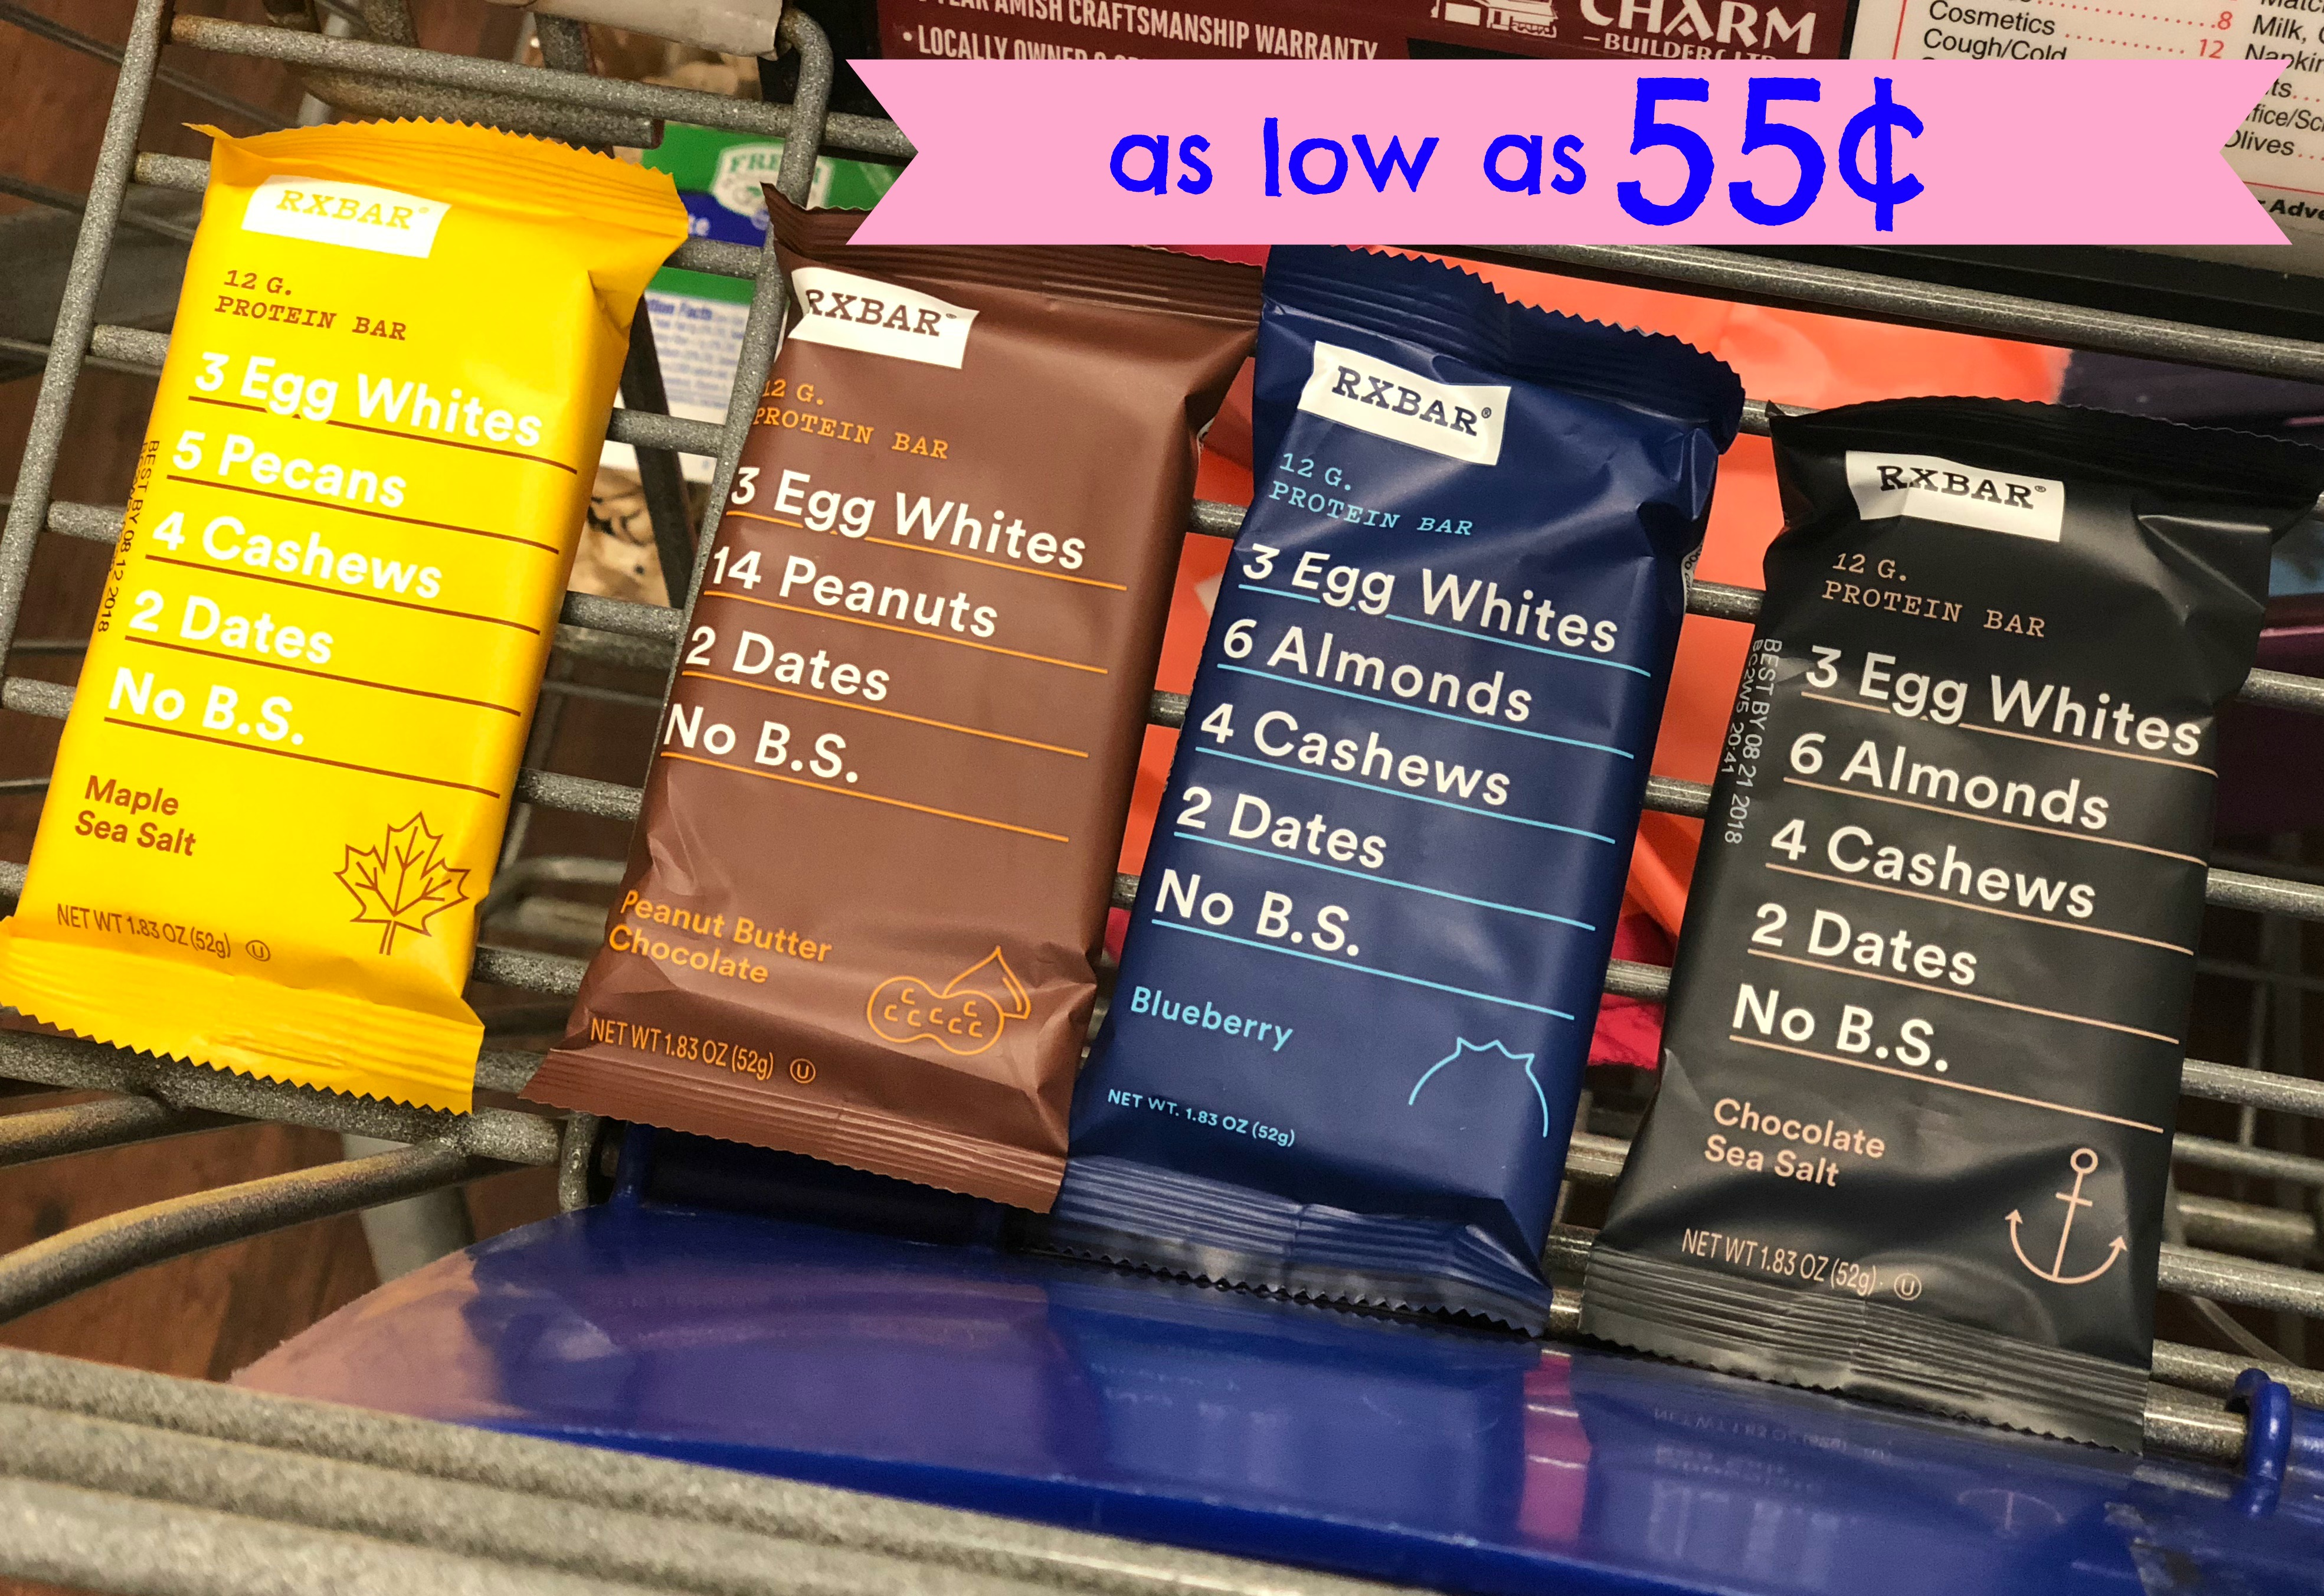 photograph regarding Kroger Printable Application referred to as RXBar Protein Bar as lower as $0.55 just about every at Kroger (Reg $2.49